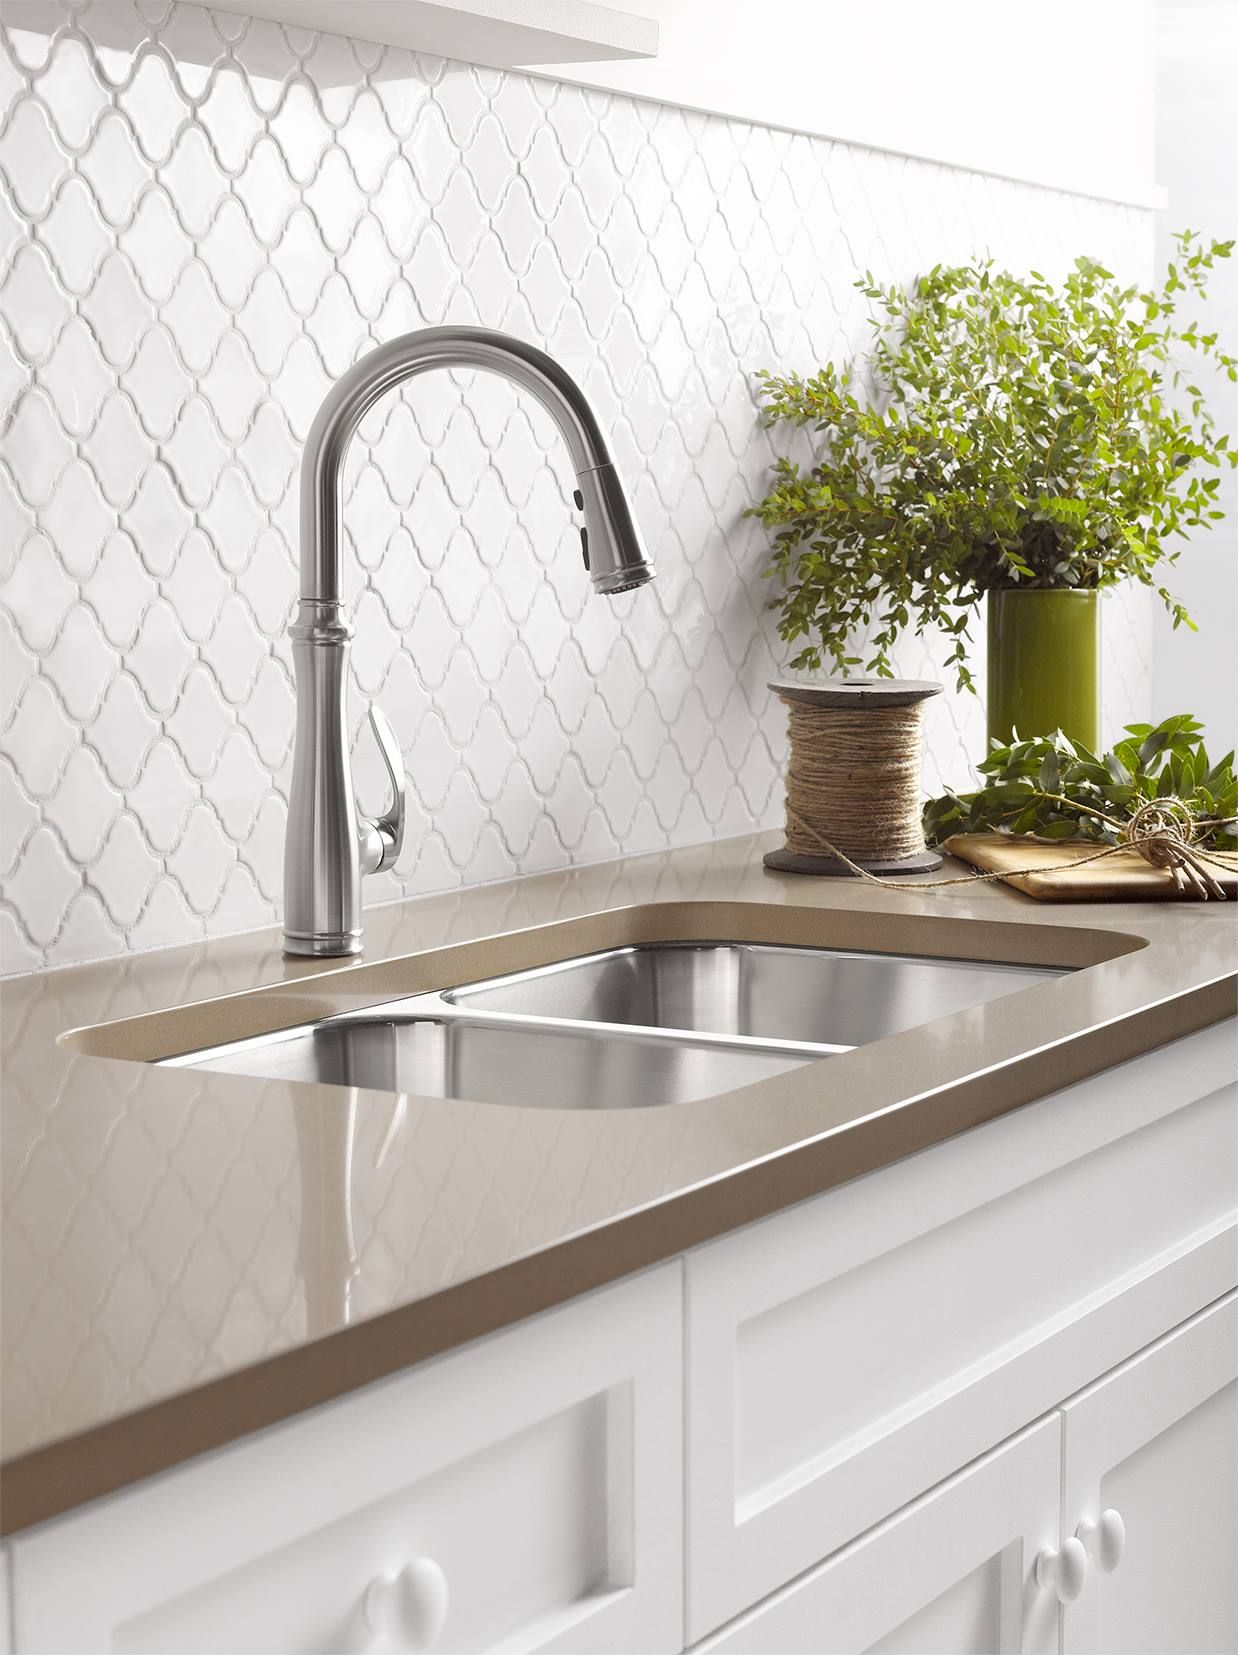 Kohler Bellera Kitchen Faucet Sink Design Corner